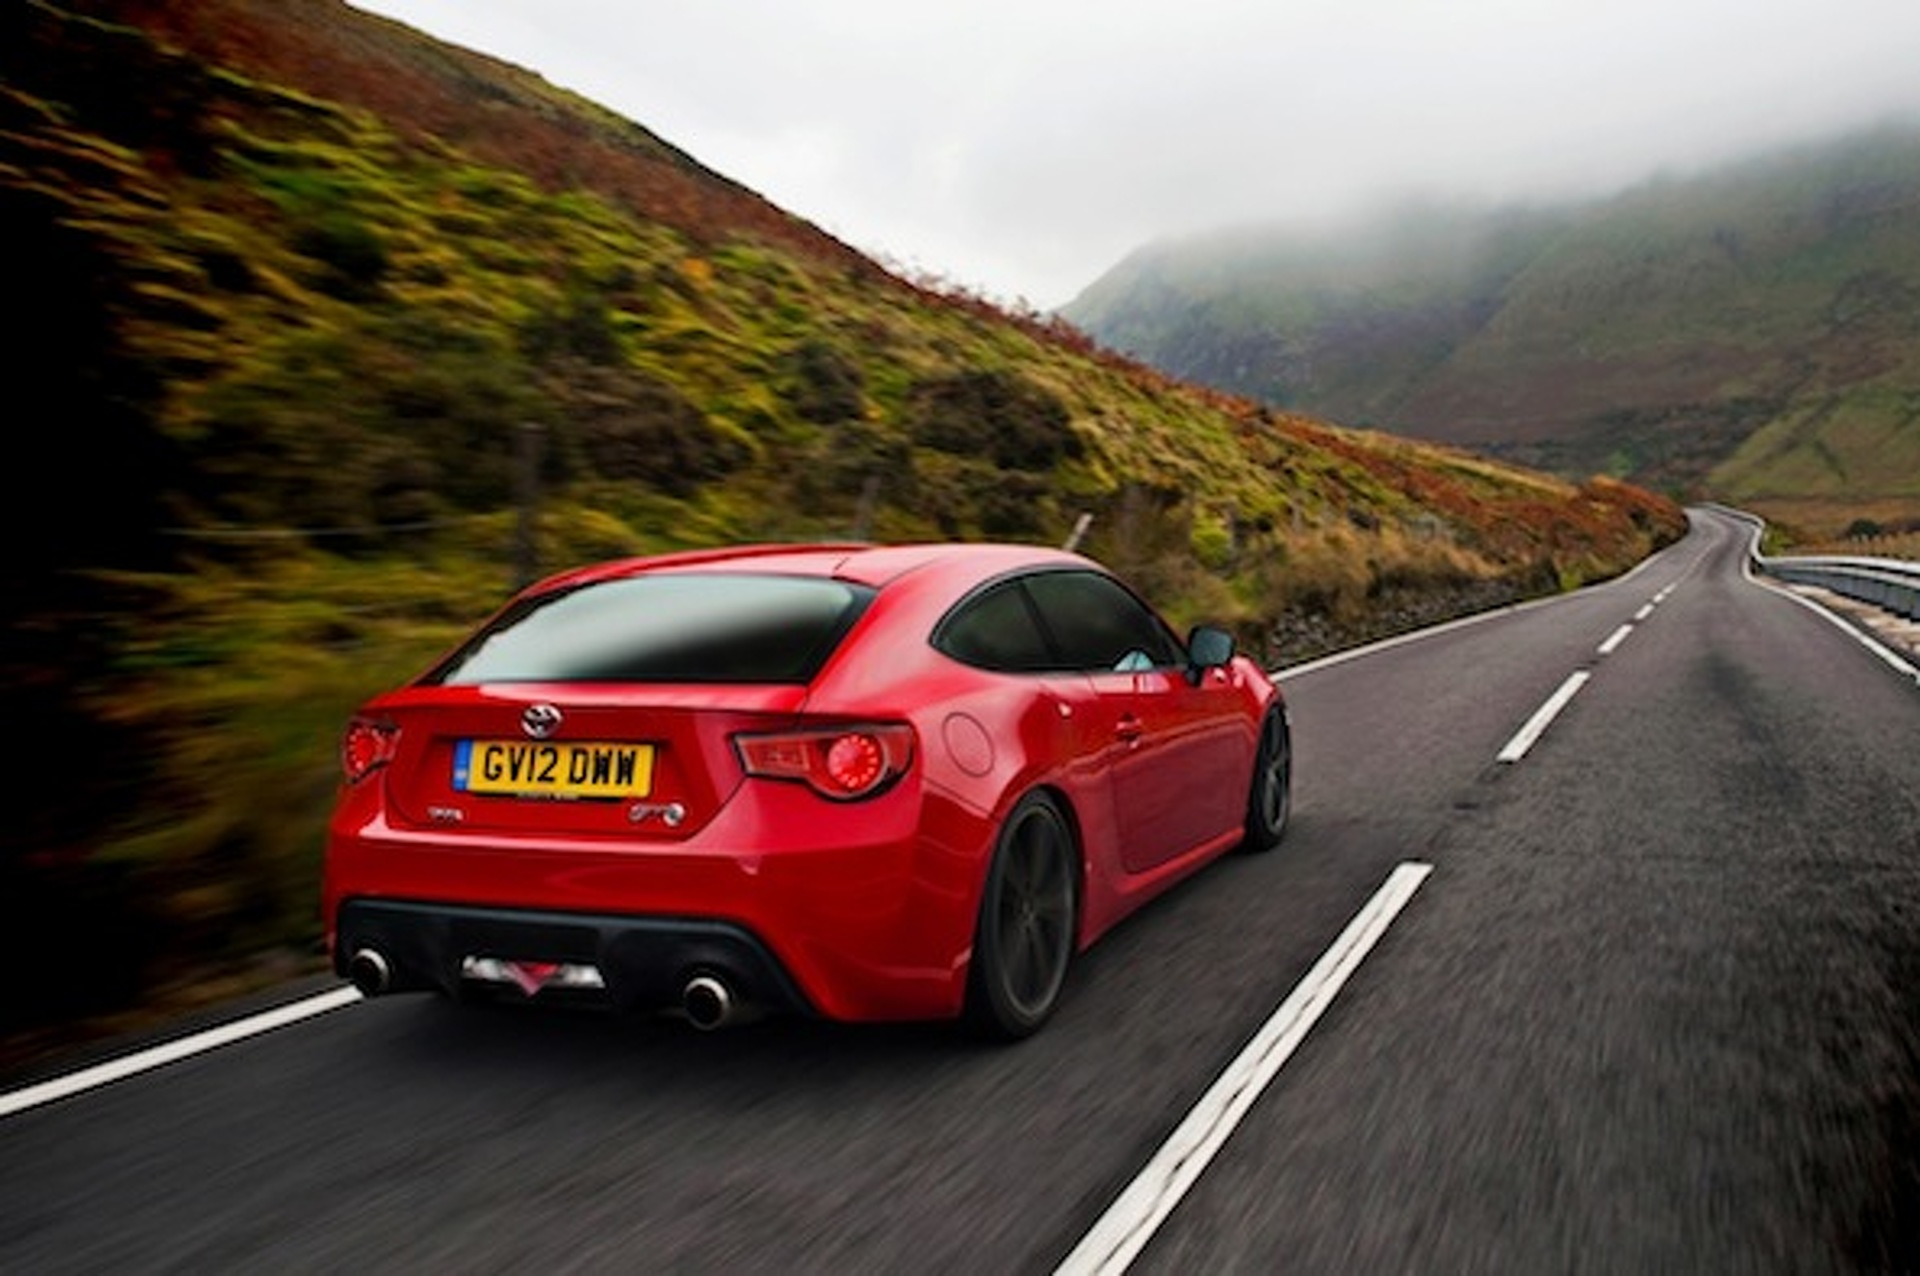 Toyota GT 86 Shooting Brake: Shut Up and Take My Money